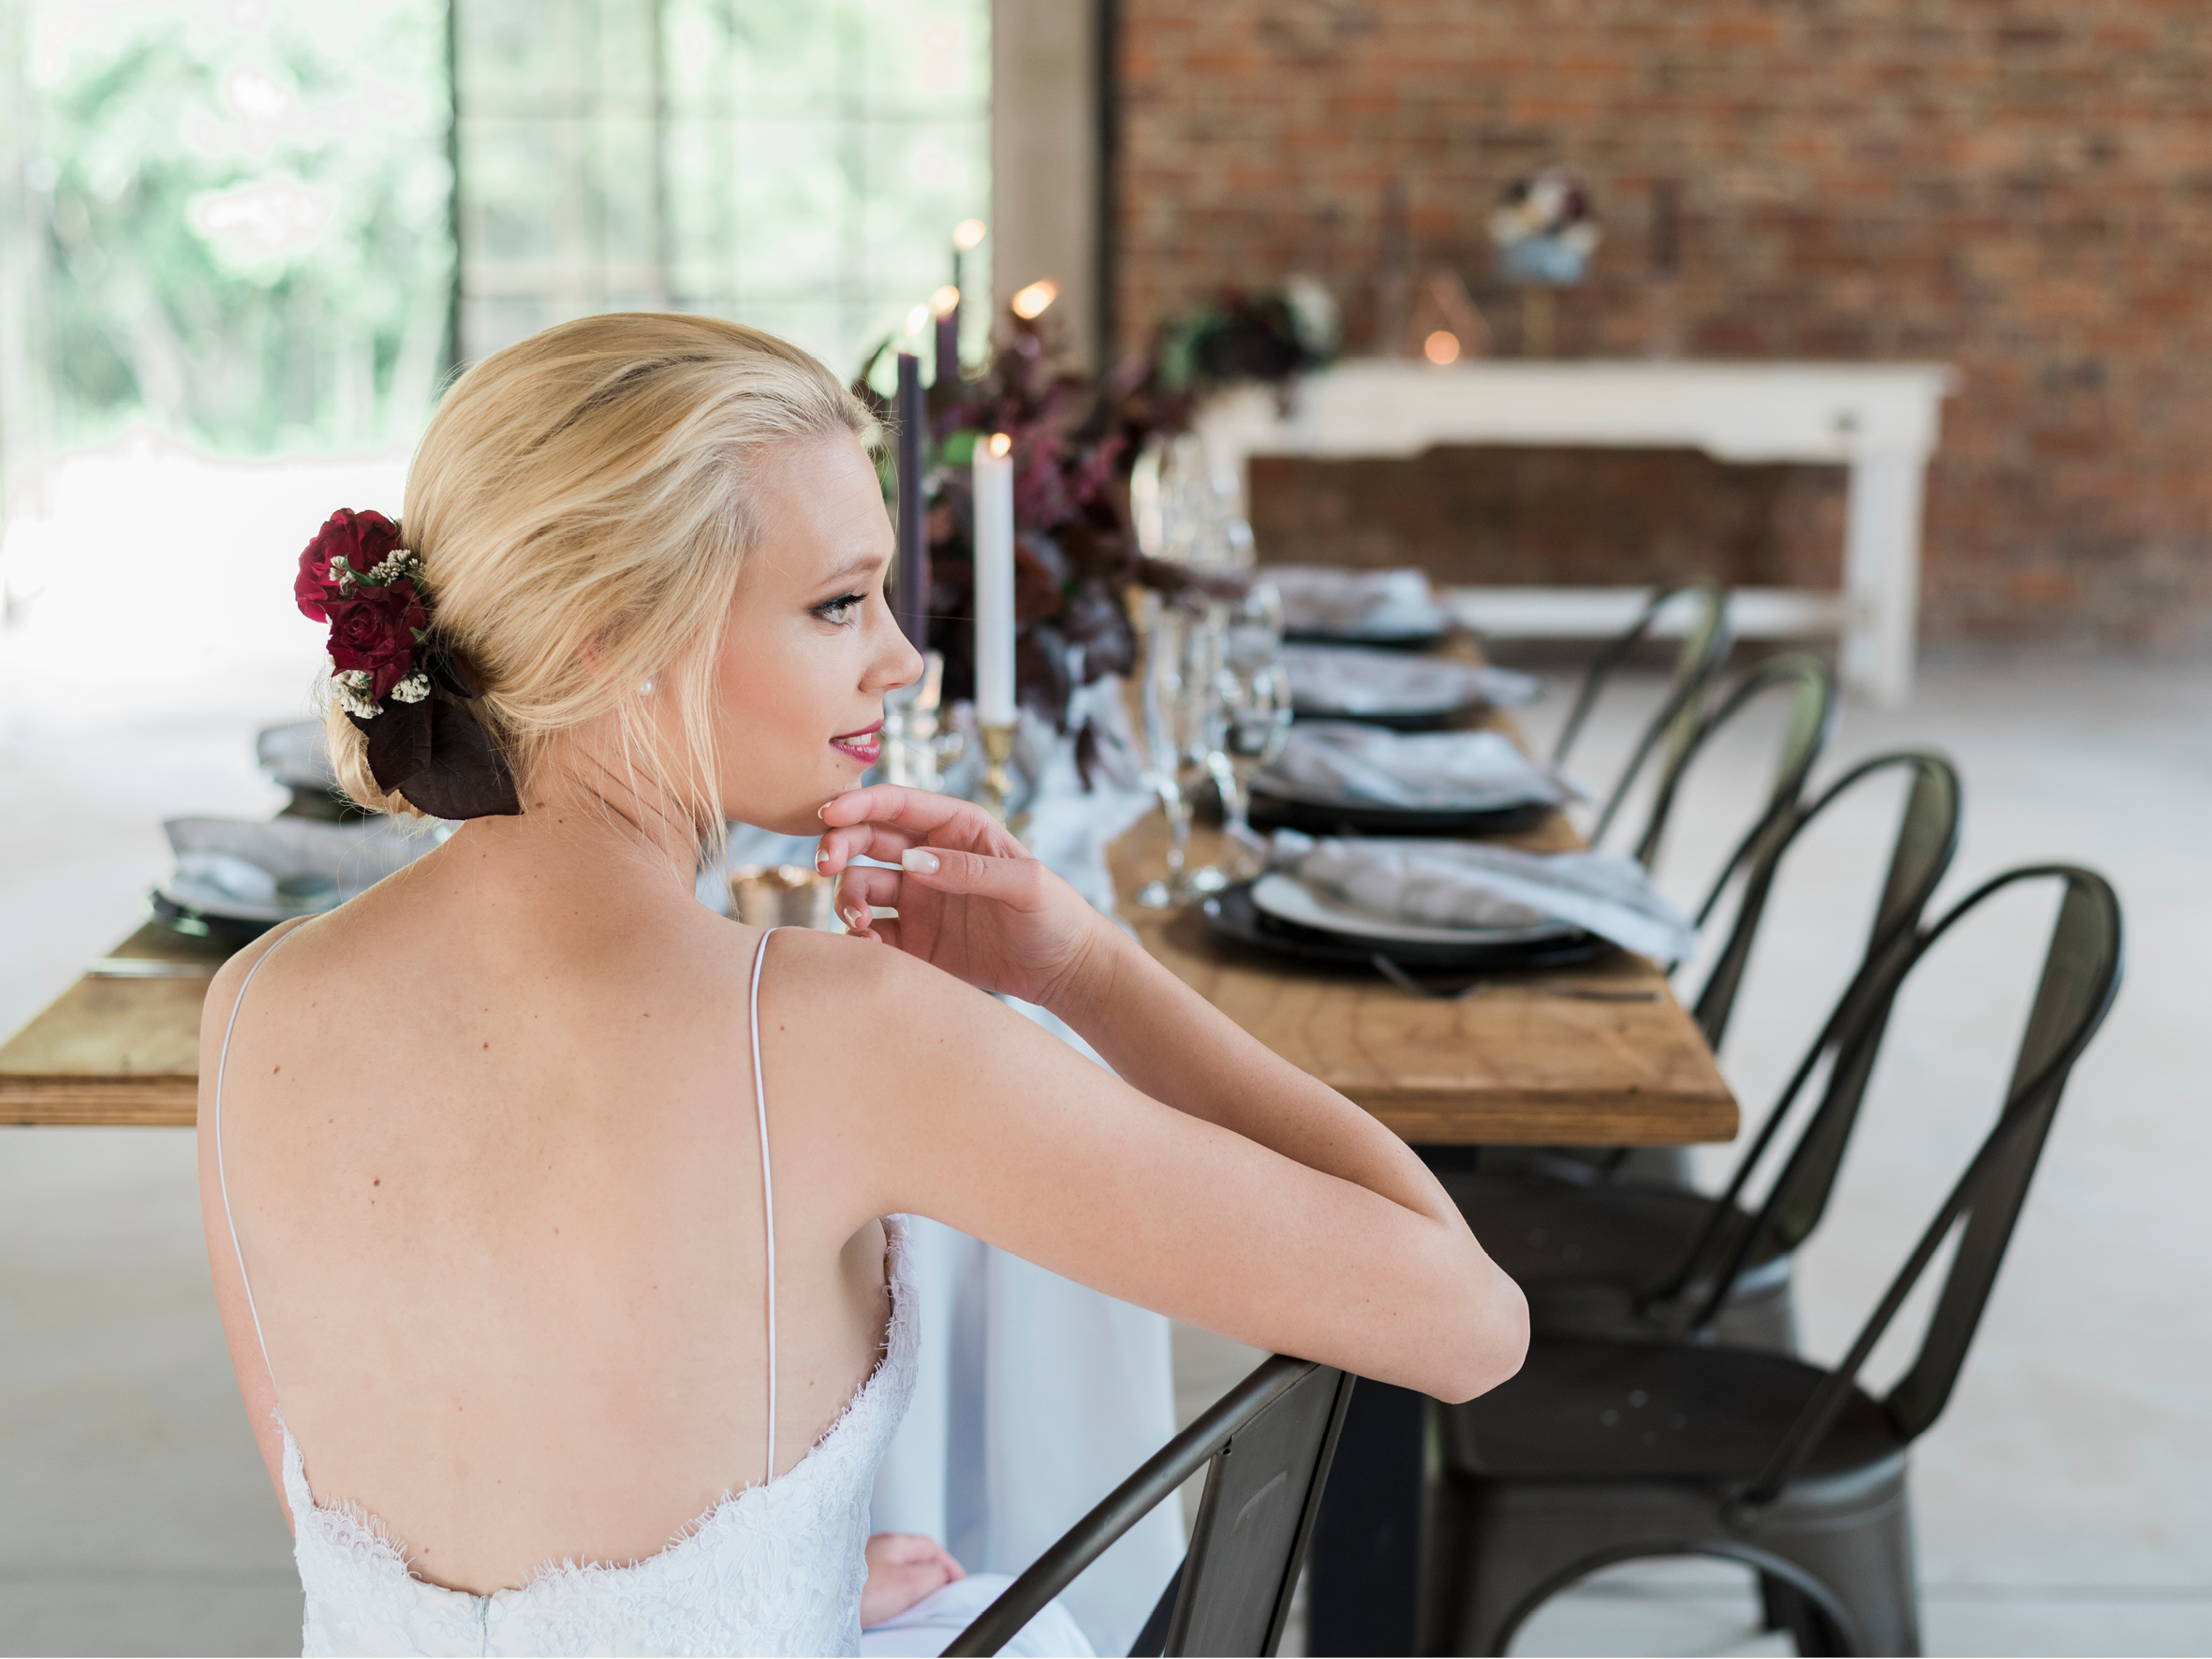 BronwynAlyson_Wedding_Styled shoot Industrial Modernism_13.jpg